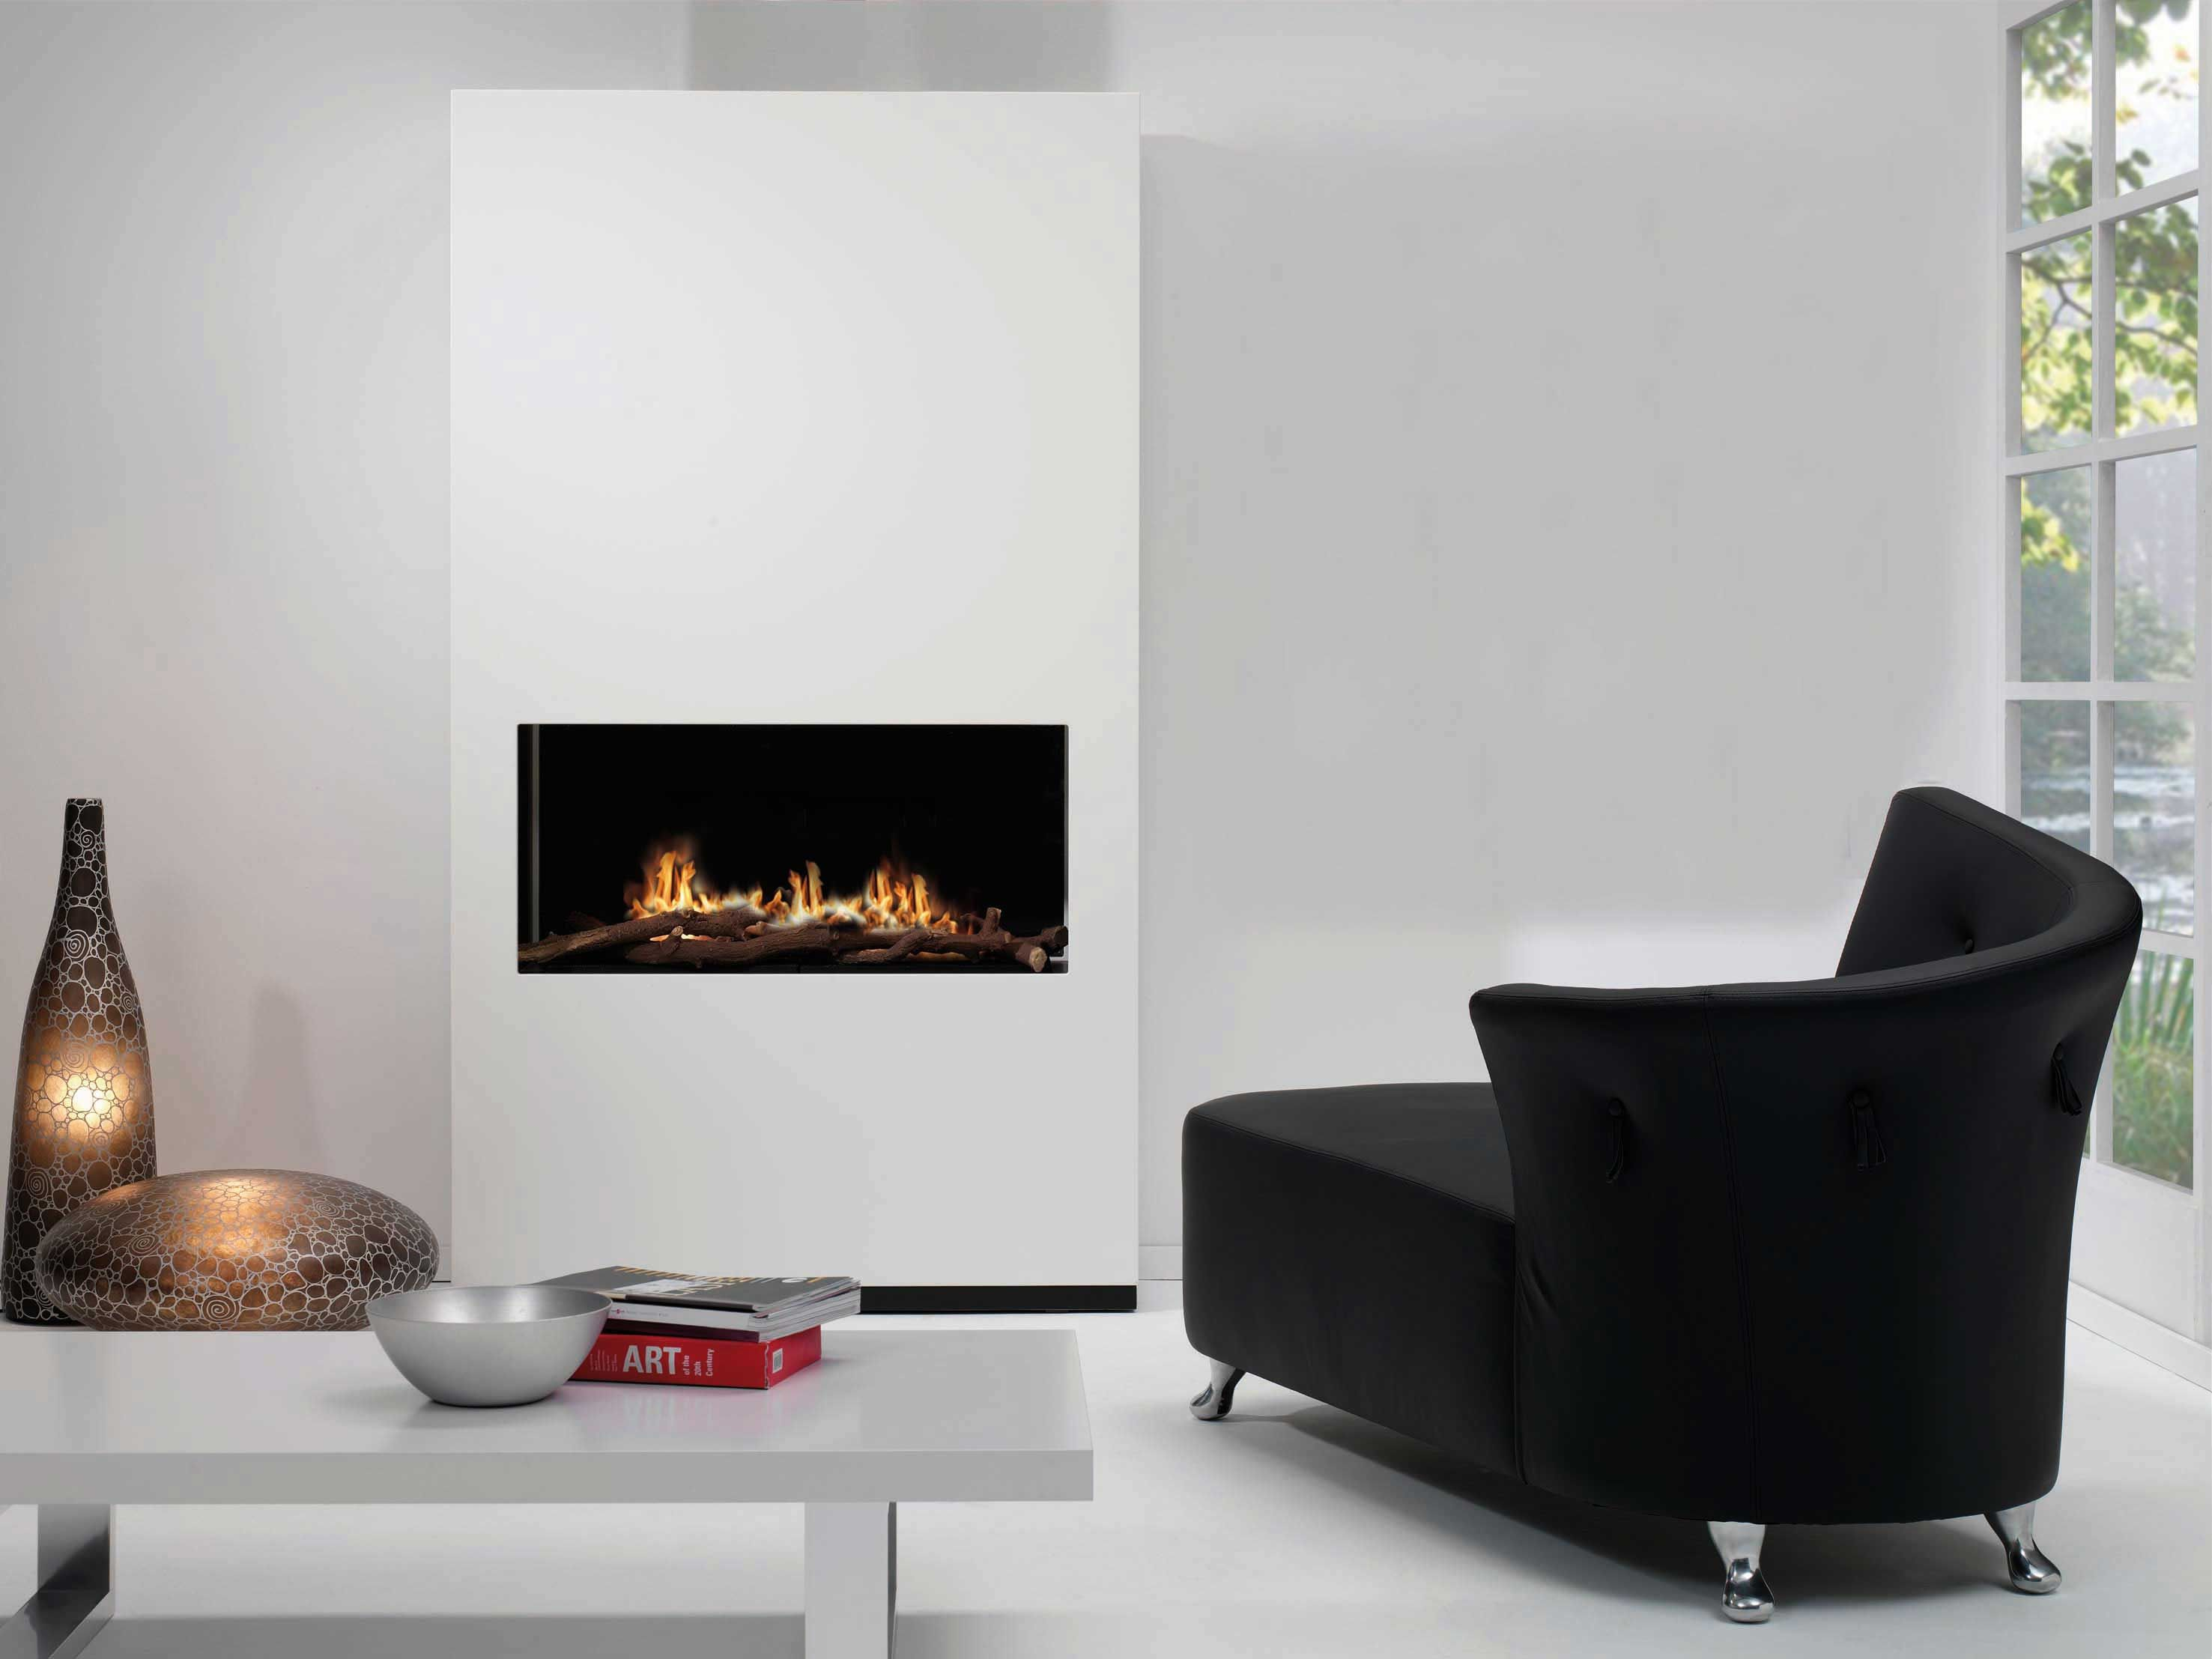 ruby fires bioethanol kamin ambiance kaufen im borono online shop ruby fires pinterest. Black Bedroom Furniture Sets. Home Design Ideas